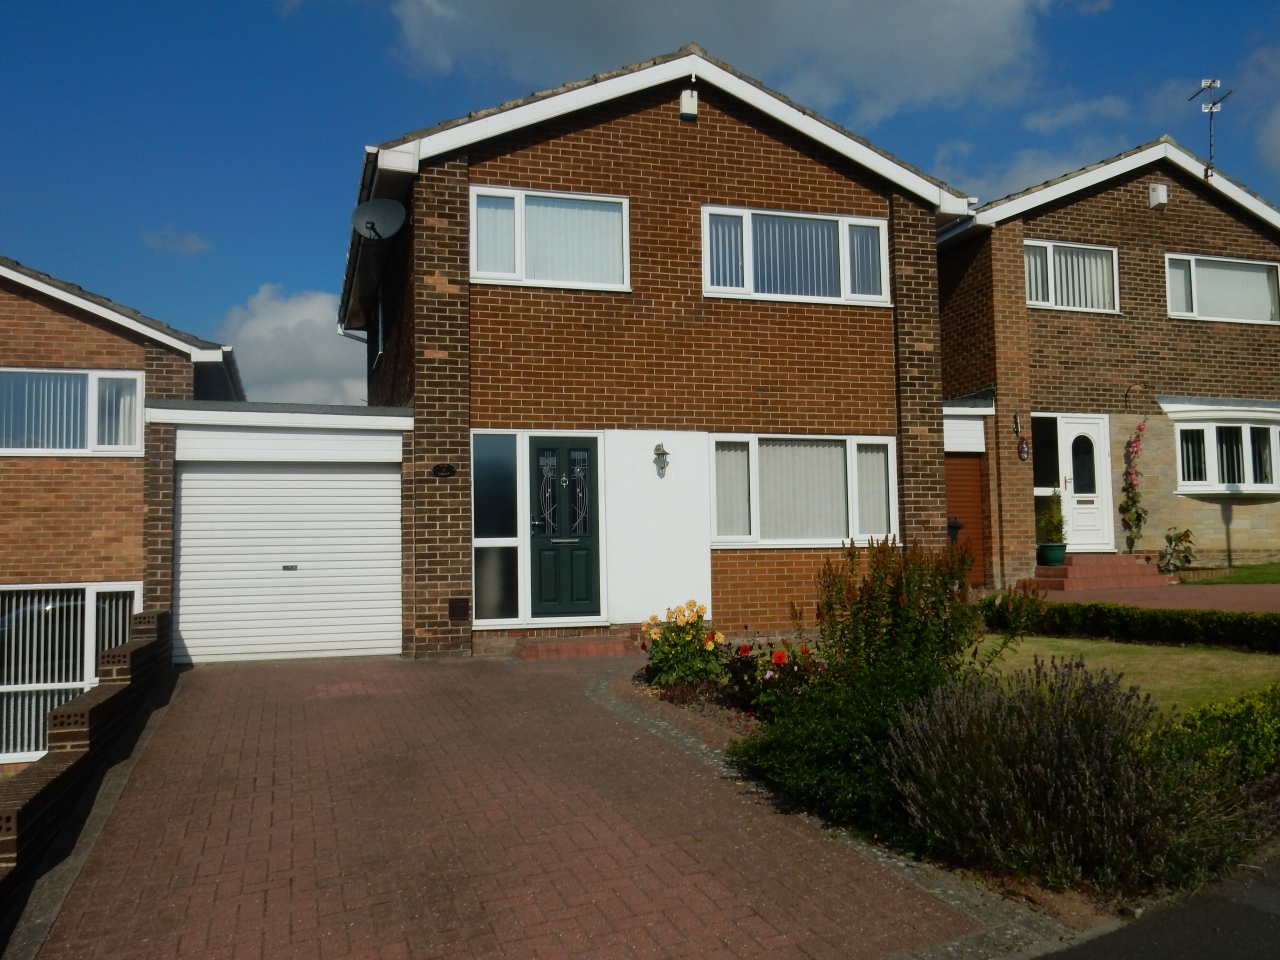 3 bedroom mid terraced house Let in Durham - Photograph 1.